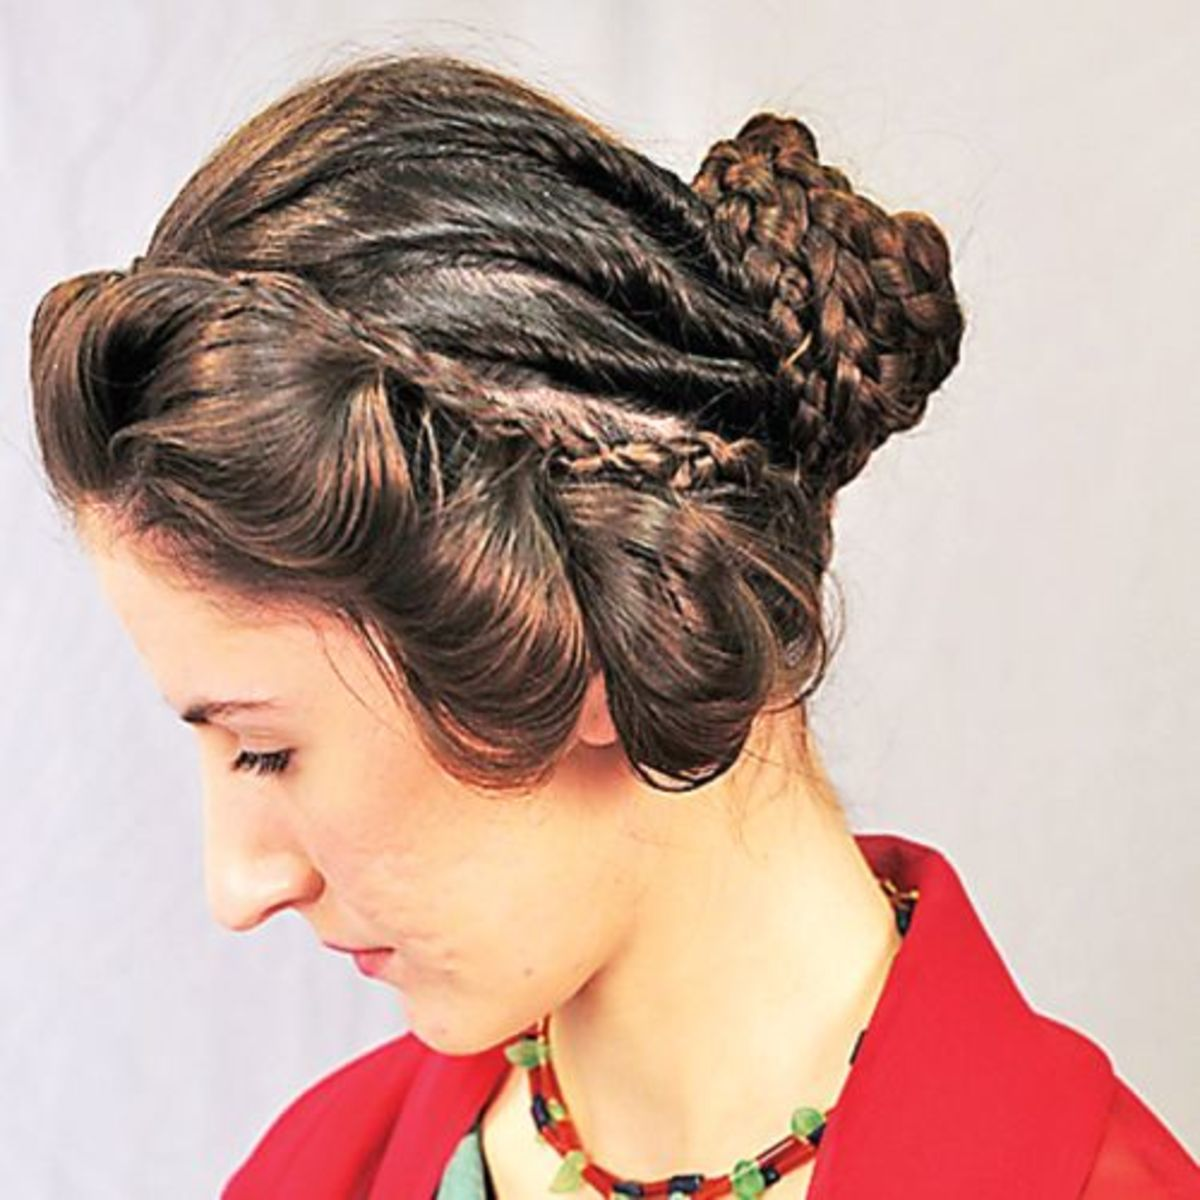 hair styles of ancient rome hubpages